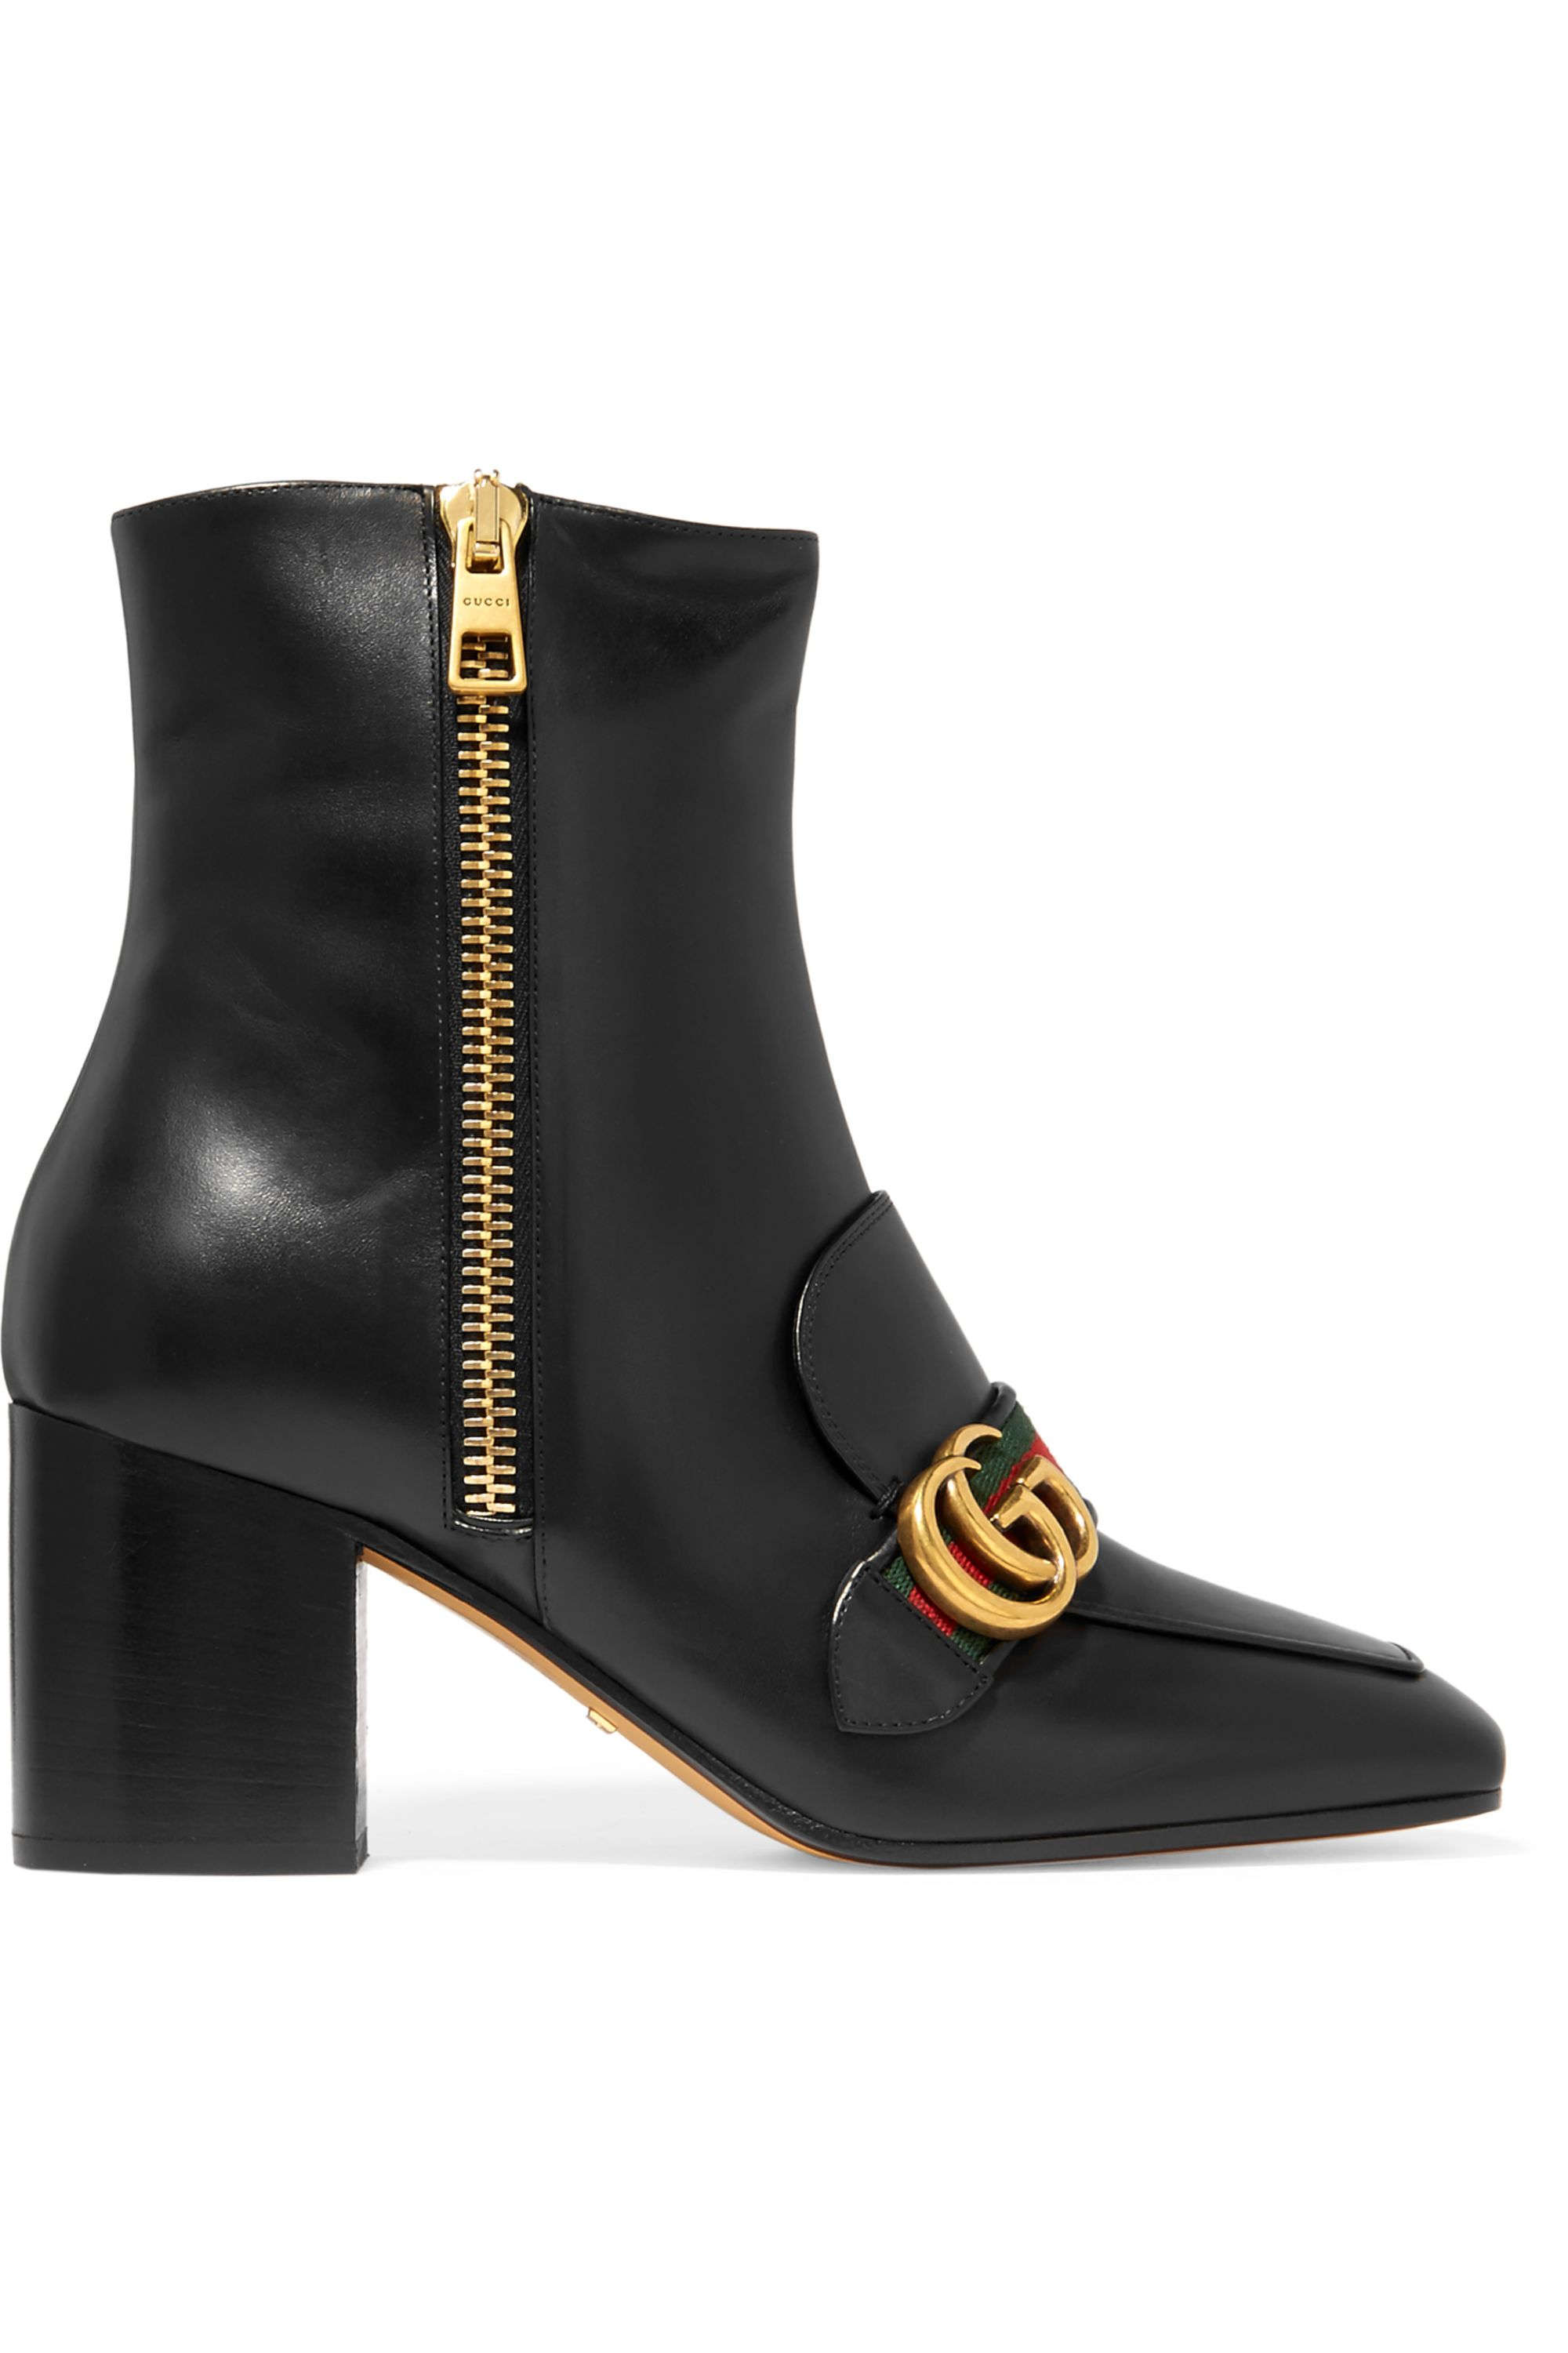 Leather ankle boots   Gucci   NET-A-PORTER